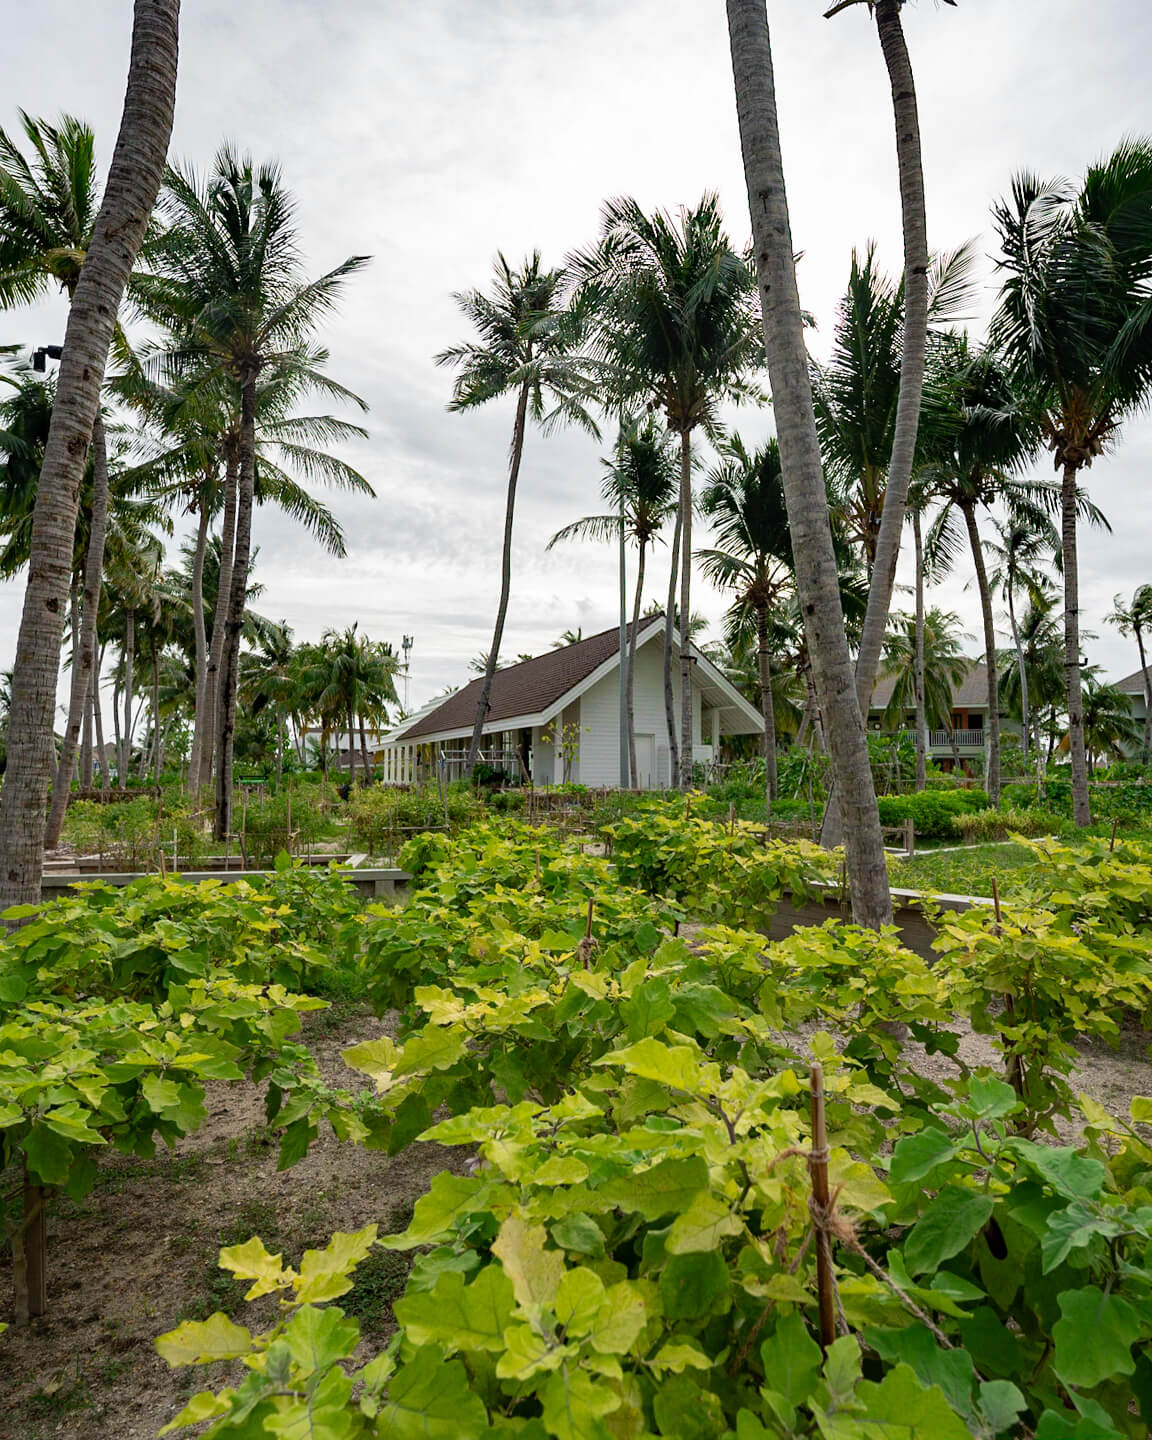 island garden with a hut in the middle surrounded by palm trees in The Maldives